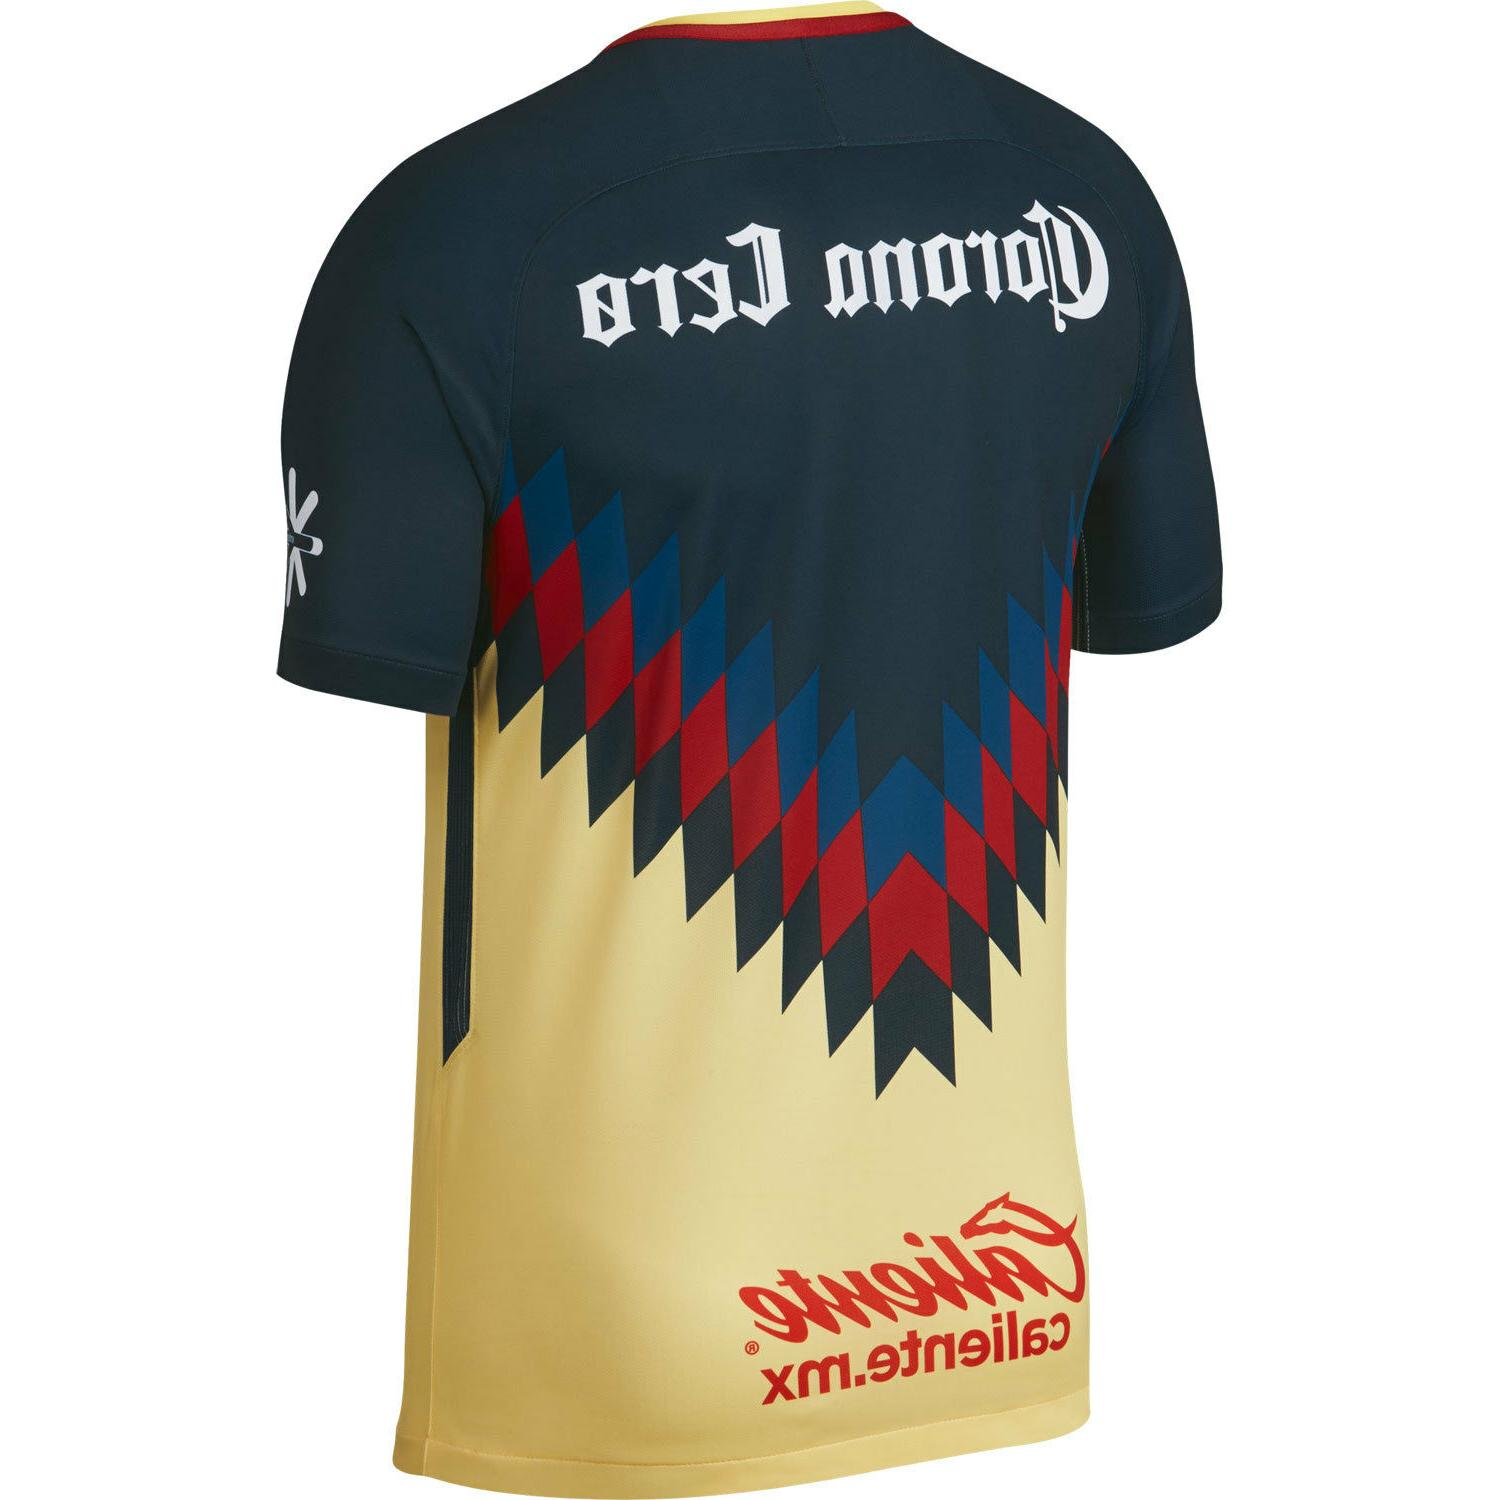 NIKE CLUB AMERICA AUTHENTIC 17/18 MEN'S T-SHIRT